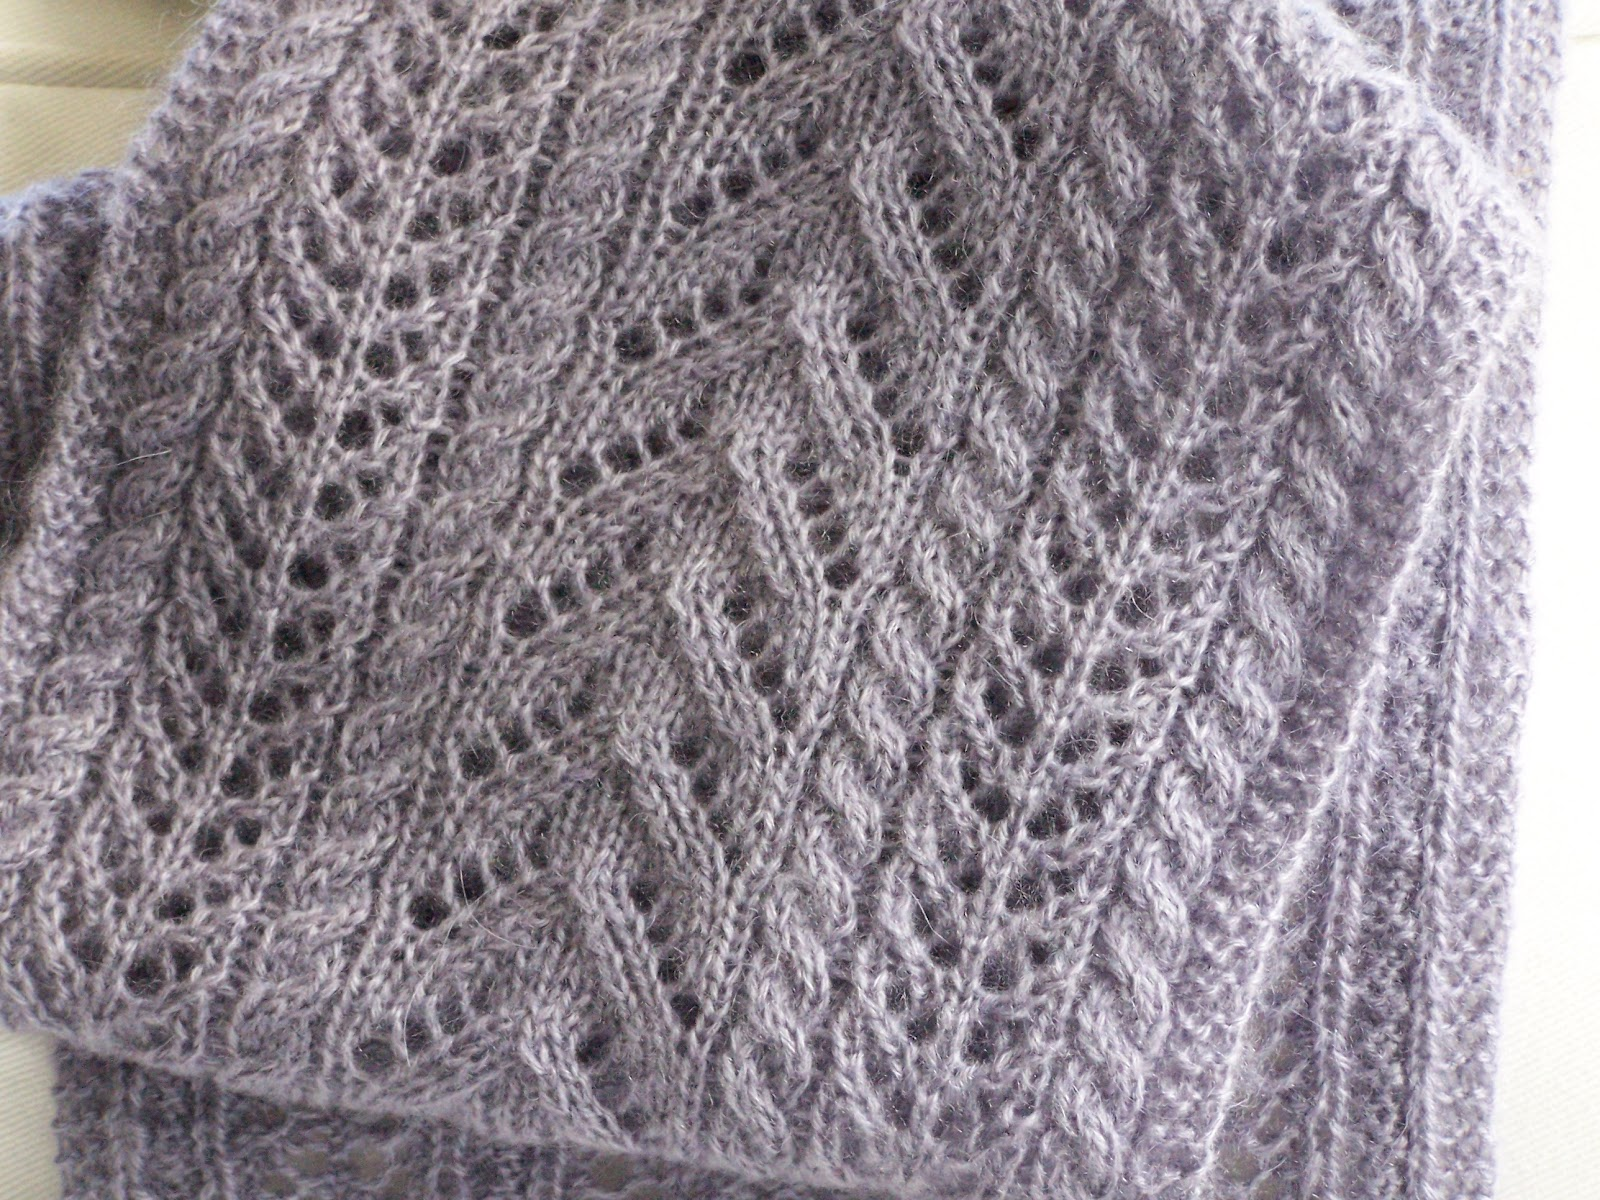 Simple Lace Knitting Pattern For Scarf : Delorme Designs: NEW SCARF PATTERN! FINALLY!!!